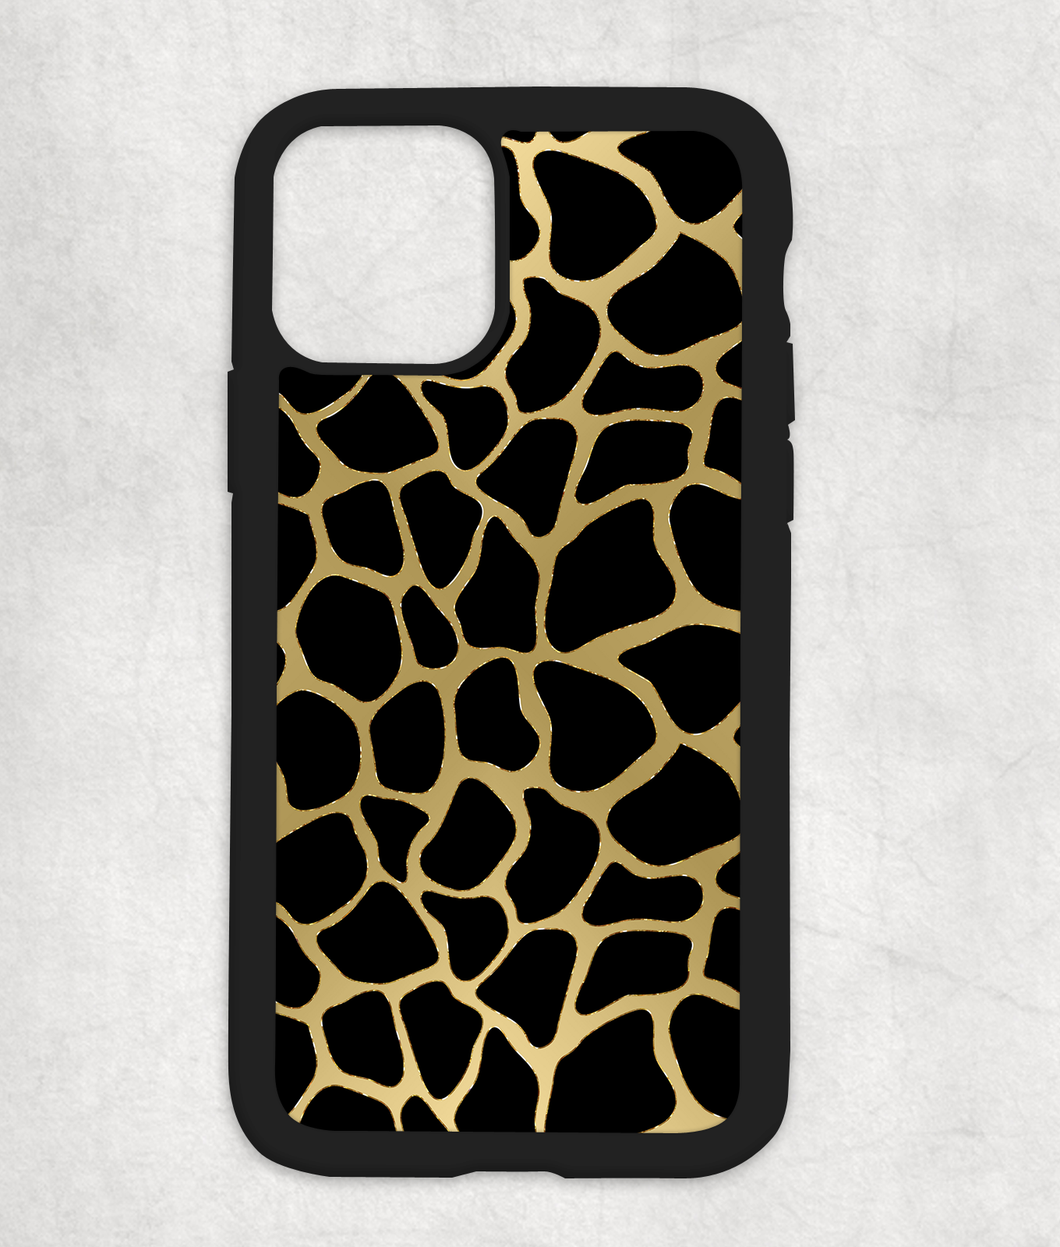 Phone Case Design | #9 - VinylsGalore